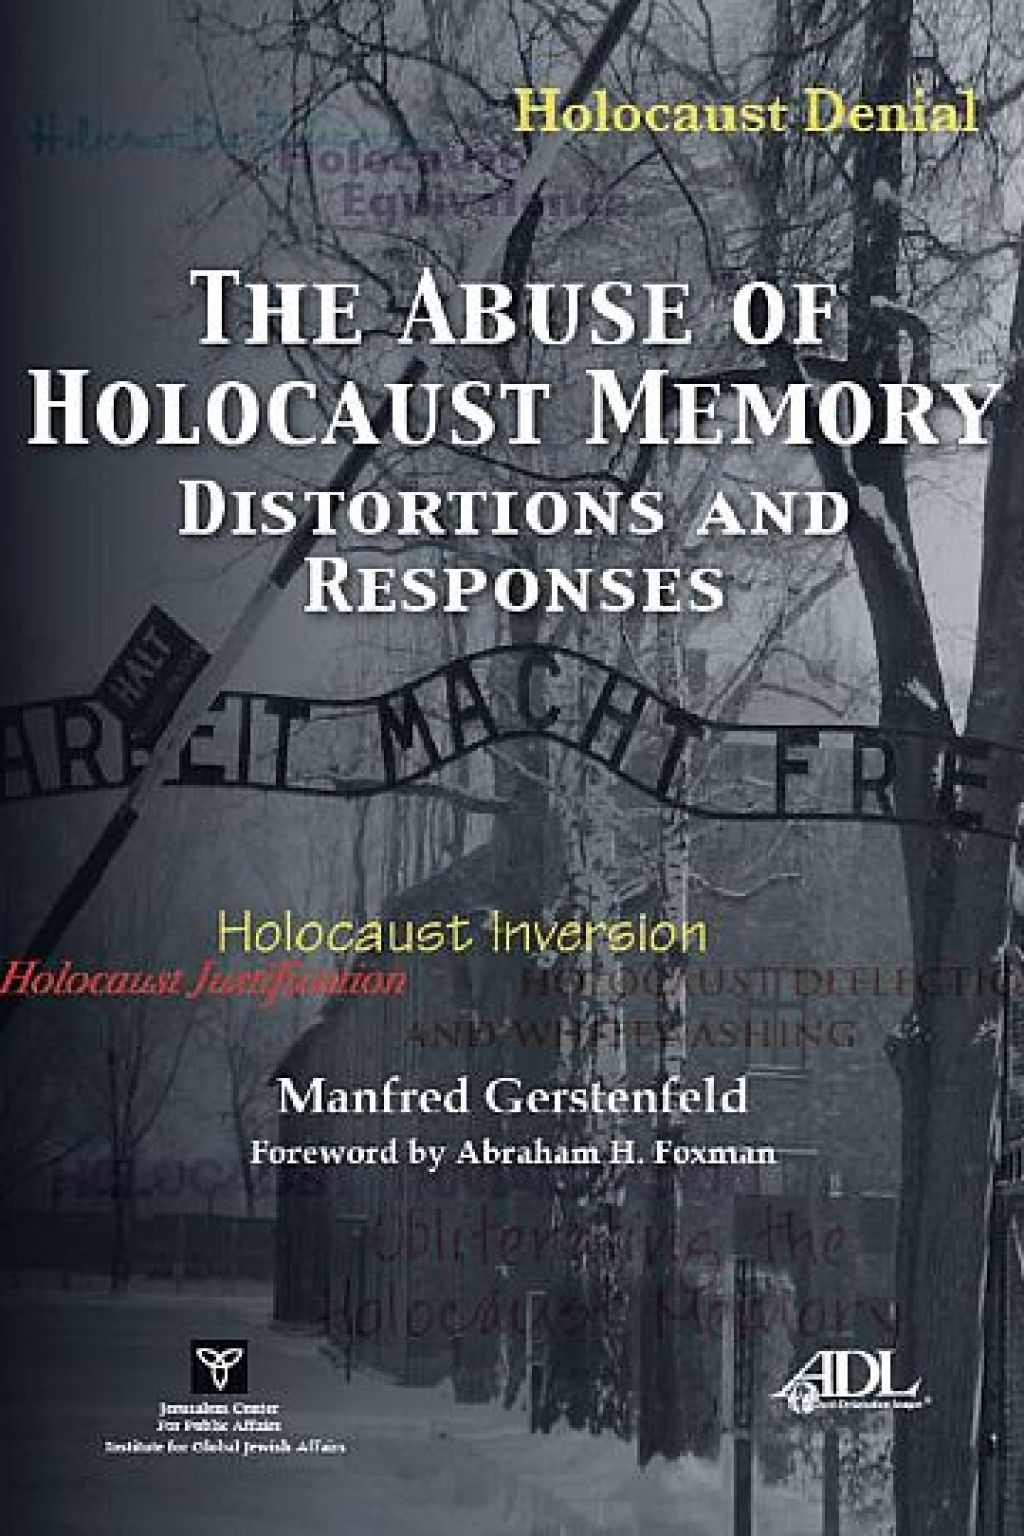 The Abuse of Holocaust Memory: Distortions and Responses